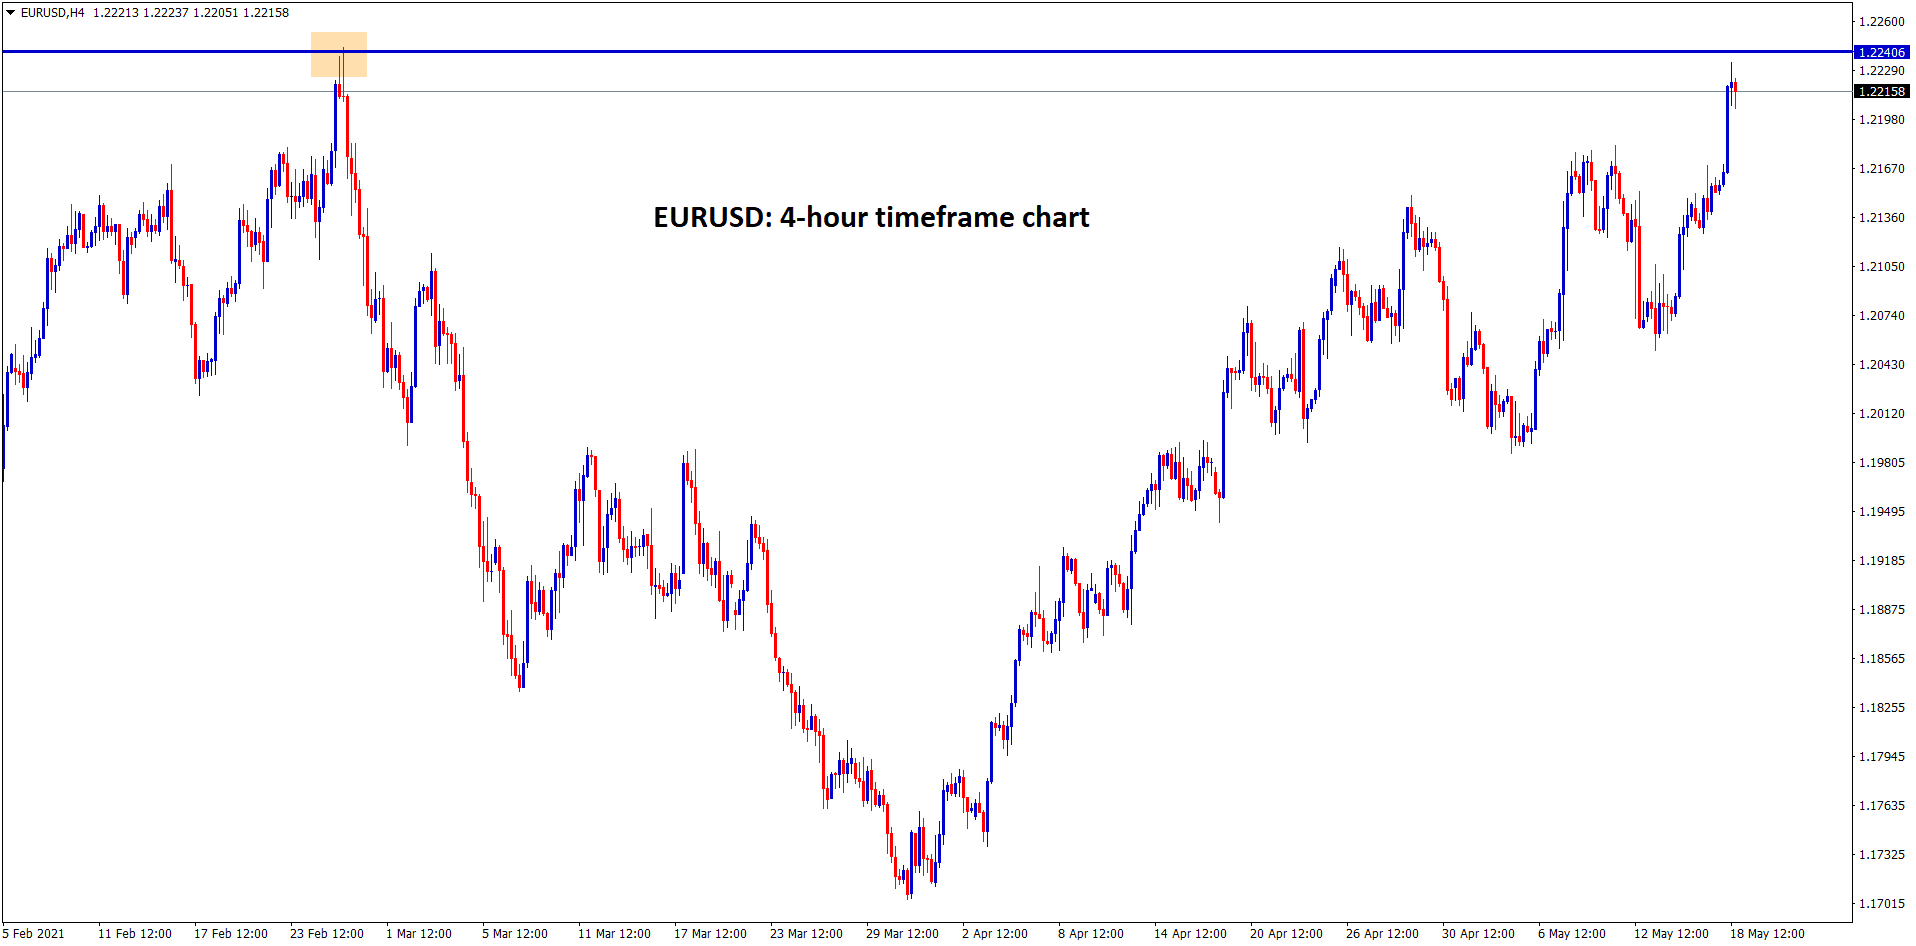 EURUSD is near to the top resistance level after 3 months.